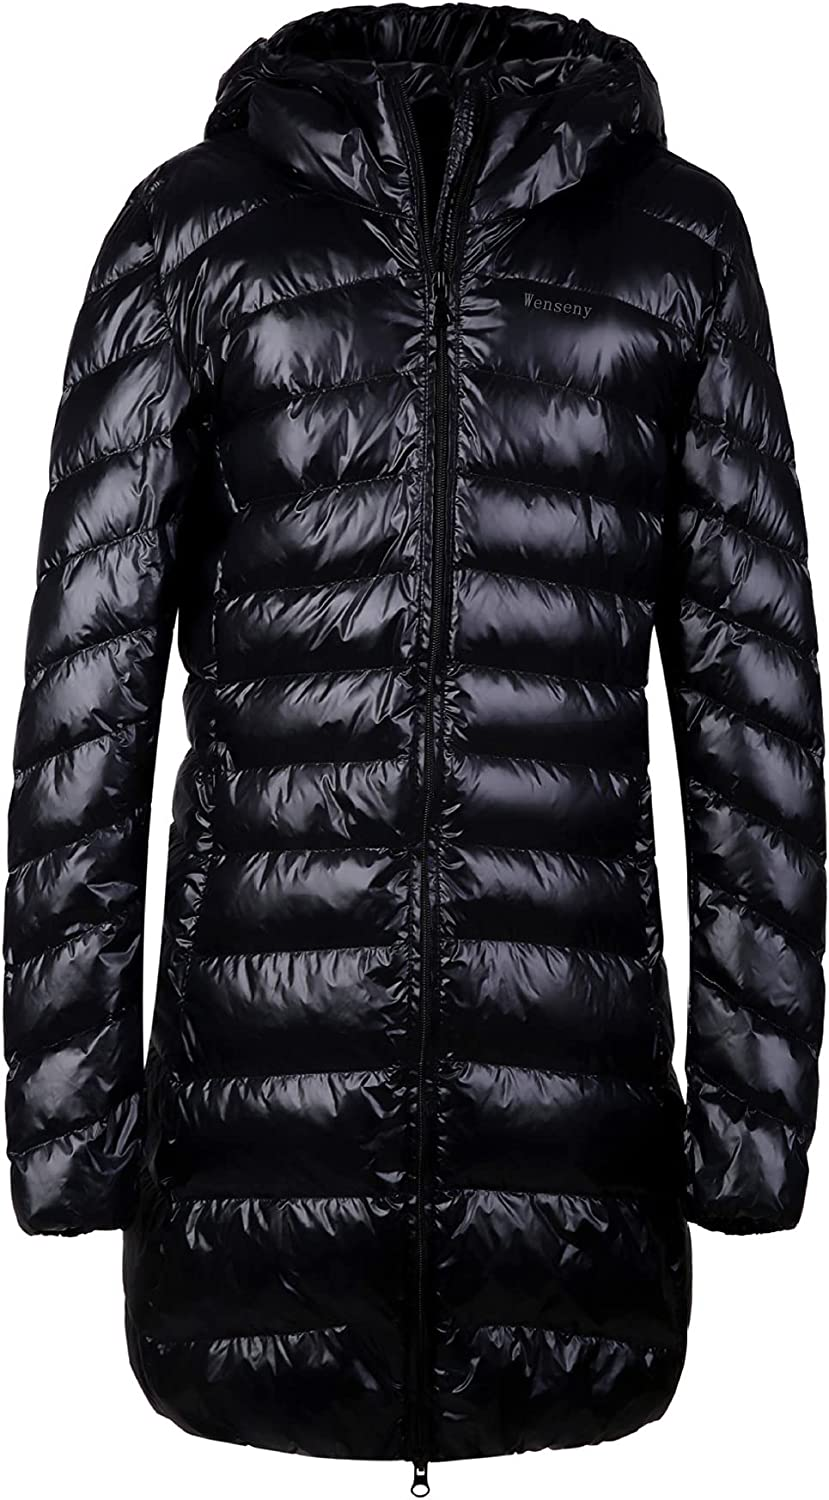 wenseny Womens Winter Outwear Packable Down Jacket Long Lightweight Hooded Coat 7 Color Available